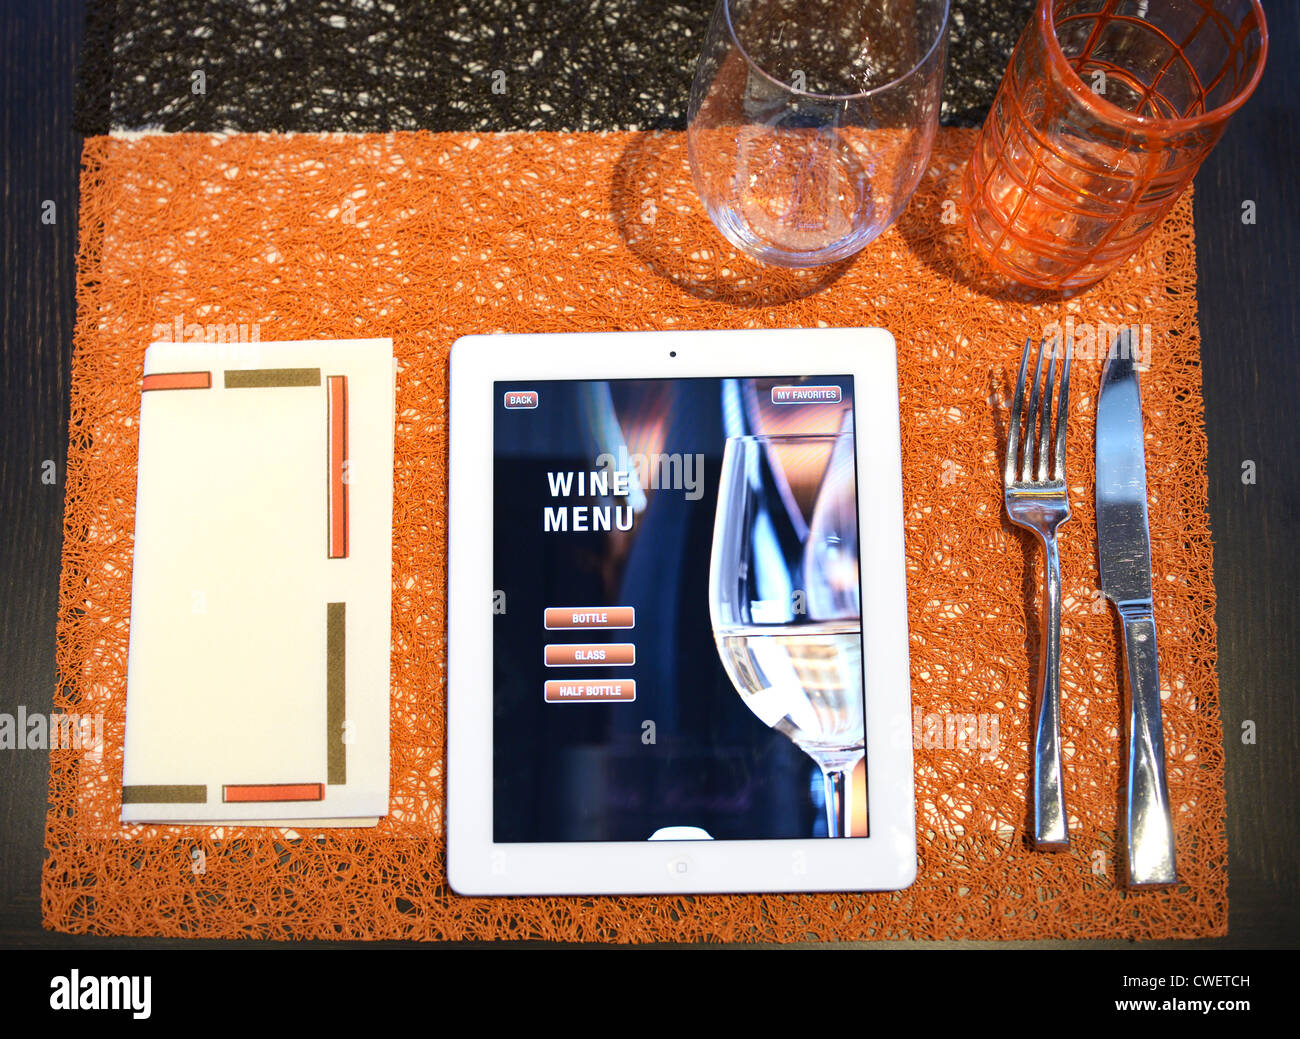 A restaurant menu on iPADs.  The page selected is the homepage for the wine menu. - Stock Image